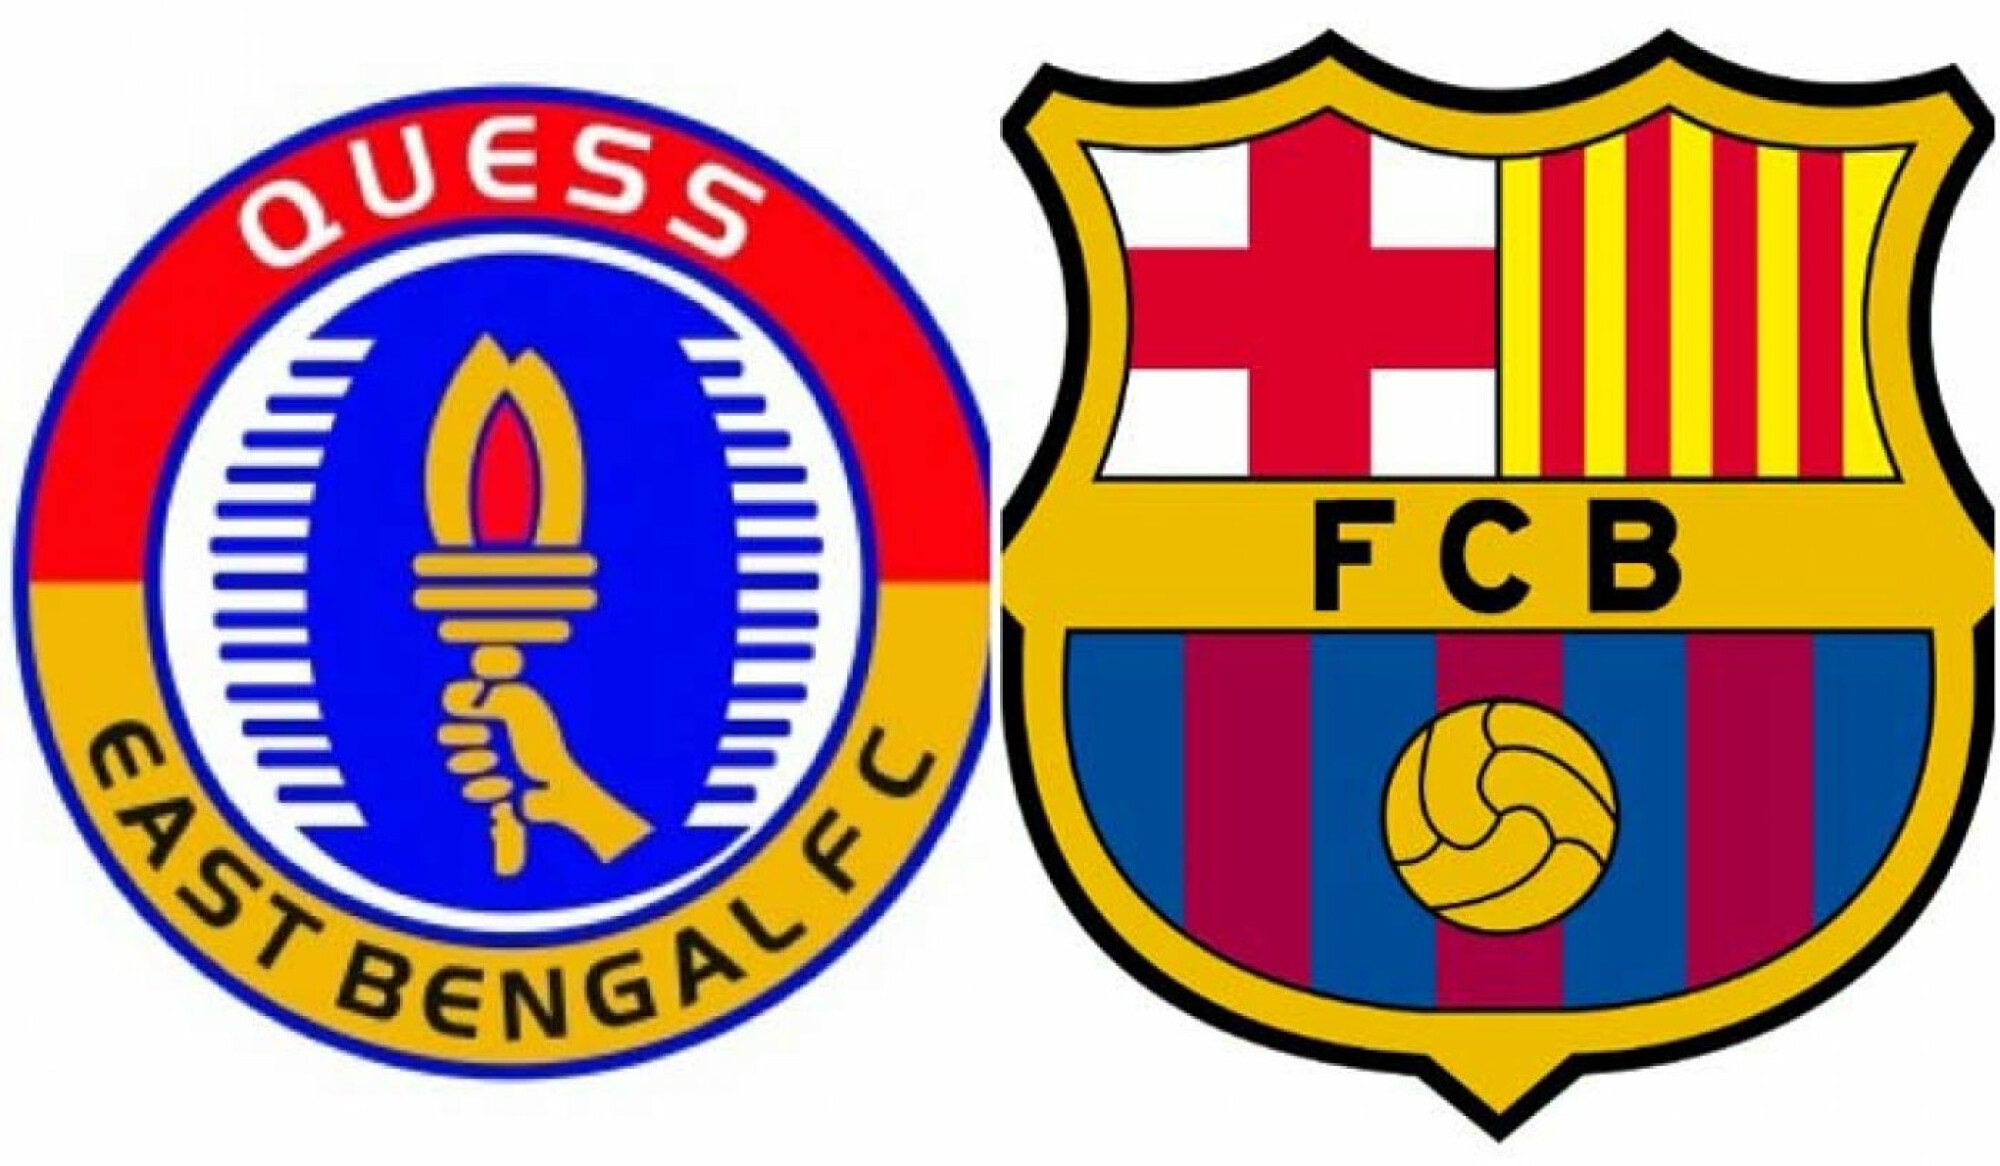 East Bengal closing in on a historic tie-up with FC Barcelona.